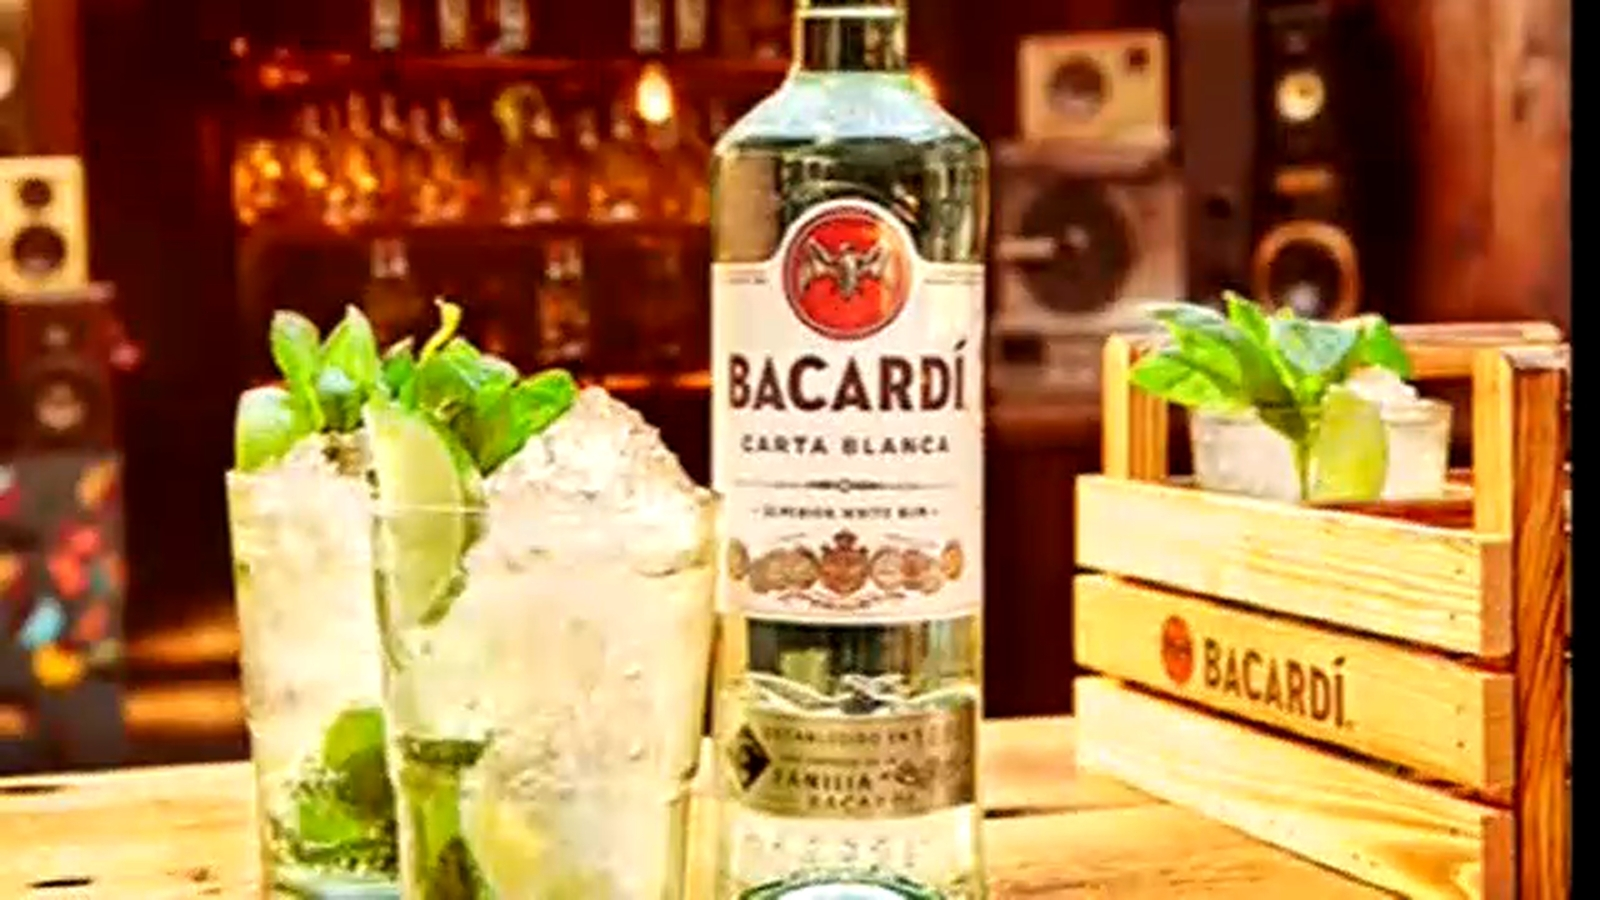 Bacardi Donating $1 Million To The Bahamas For Disaster Relief After Hurricane Dorian photo